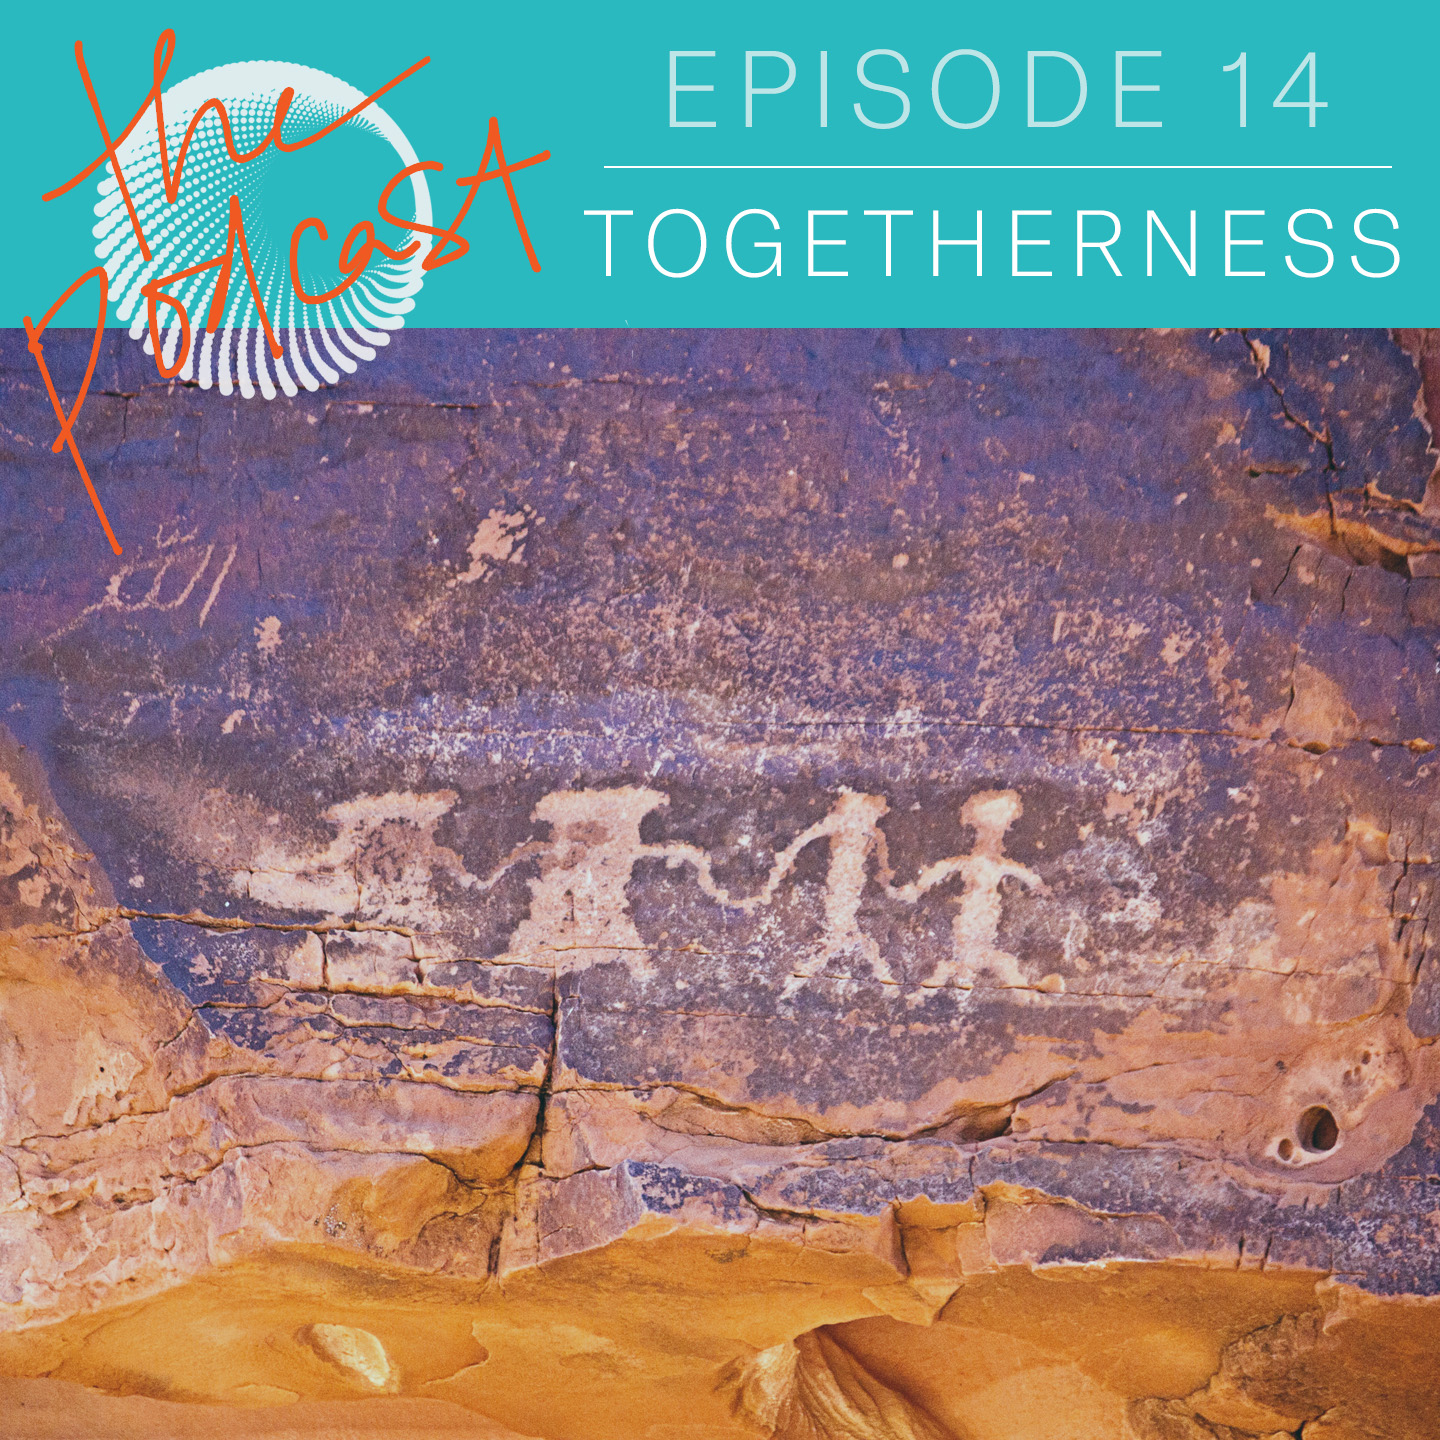 Episode 1.14: Togetherness   HOW CHANGE FACILITATORS LEVEL-UP POSSIBILITY IN THE ROOM  Facilitator, mentor, and friend  Gibrán Rivera  joins Tim and Tuesday for a conversation about how to practice togetherness to tackle insurmountable problems. ||  For show notes, visit the episode page.  || MARCH 19, 2019